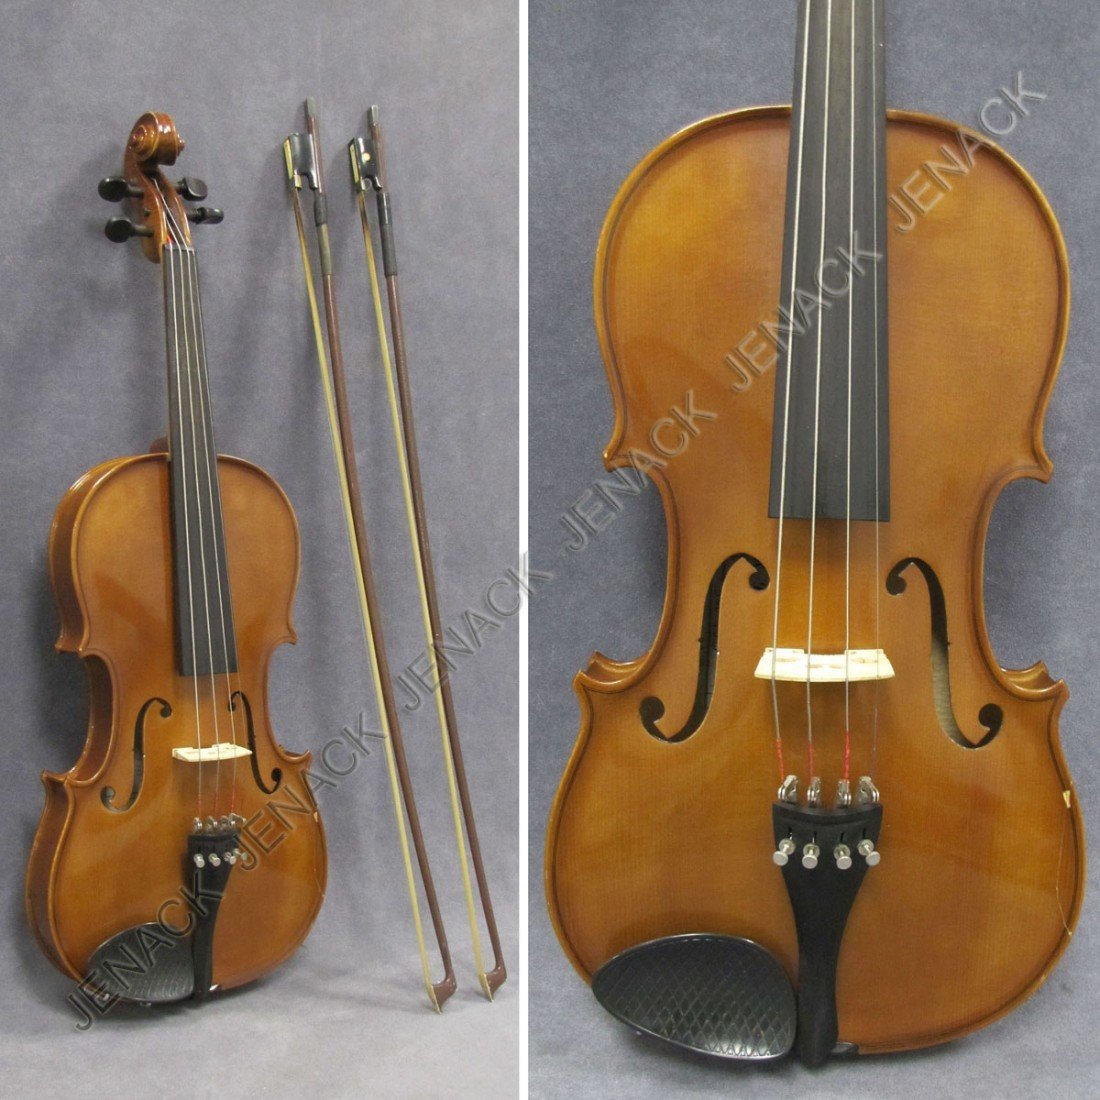 18: VIOLIN LABELED RODERICK PAESOLD, BUBEUREUTH 1994